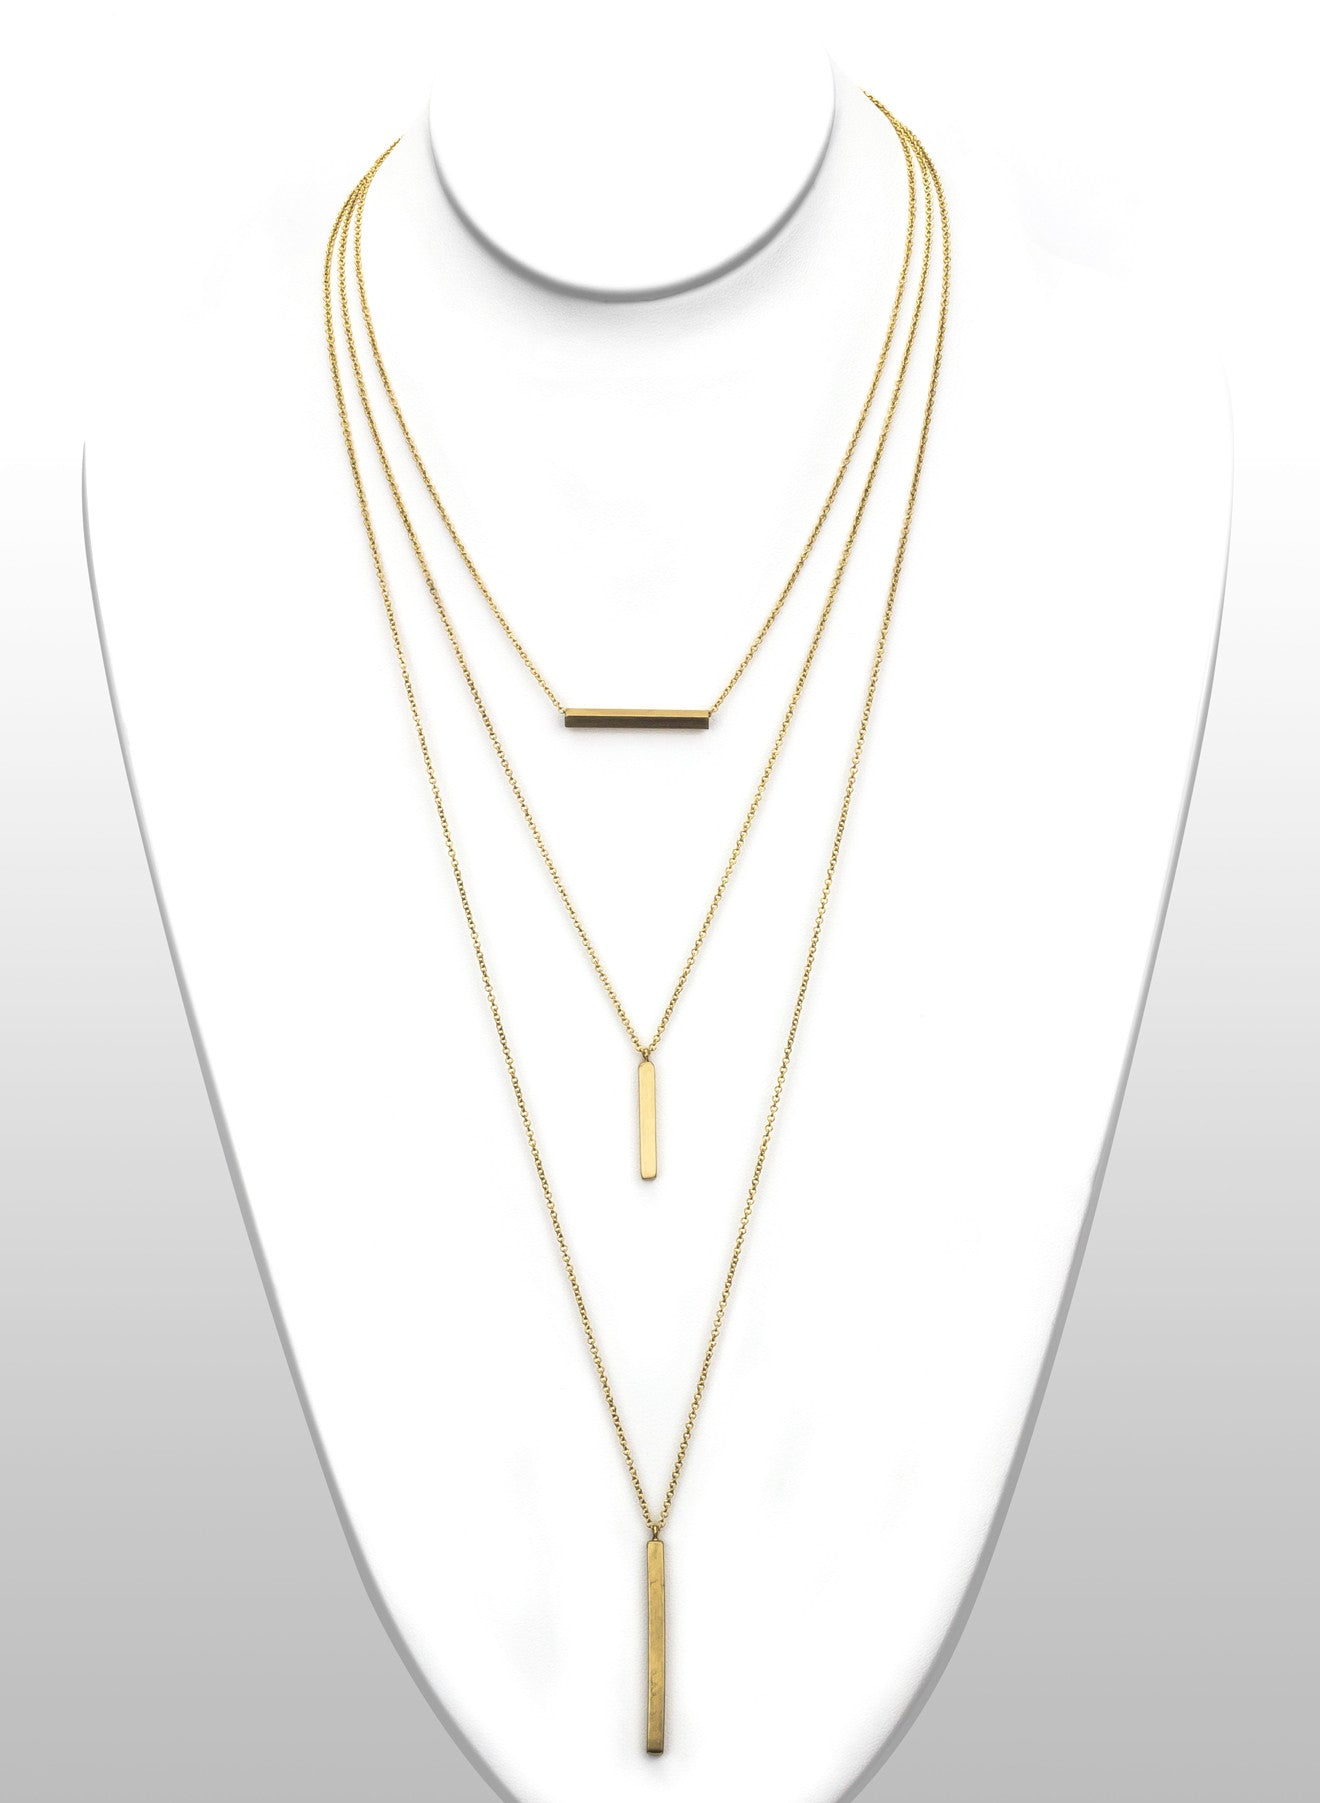 Layered Cubist Necklace